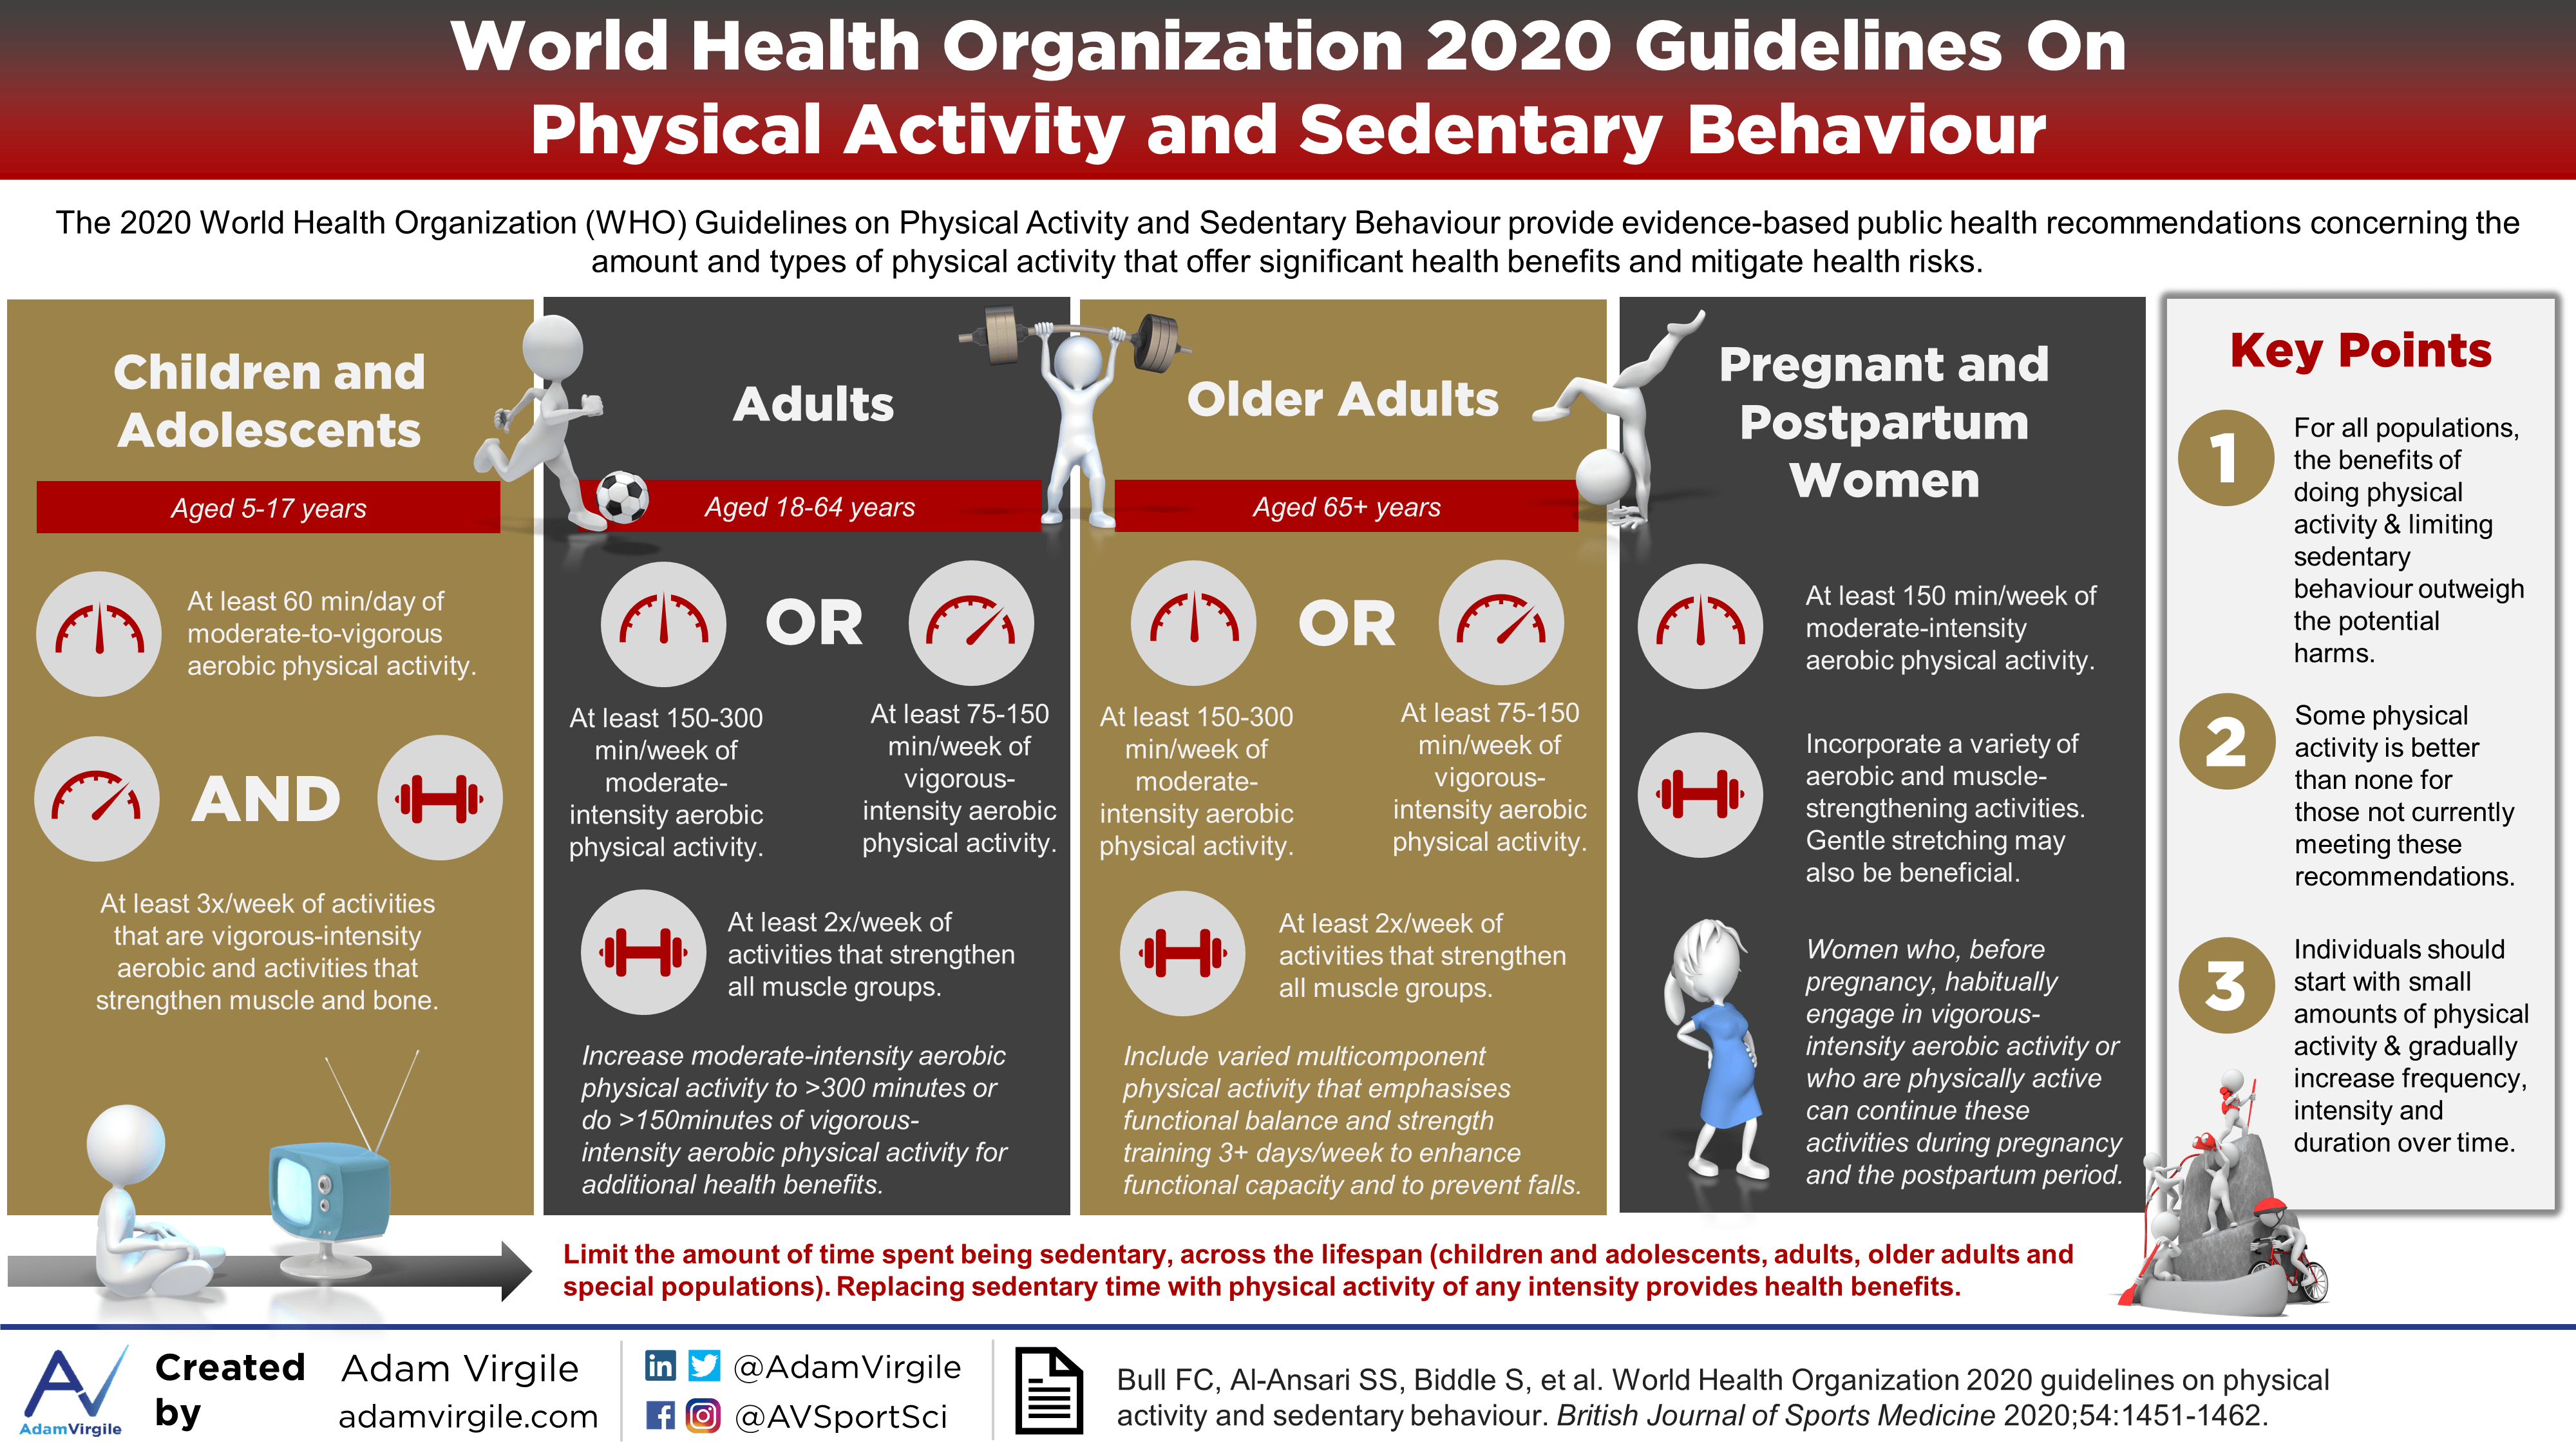 World Health Organization 2020 Guidelines n Physical Activity and Sedentary Behaviour